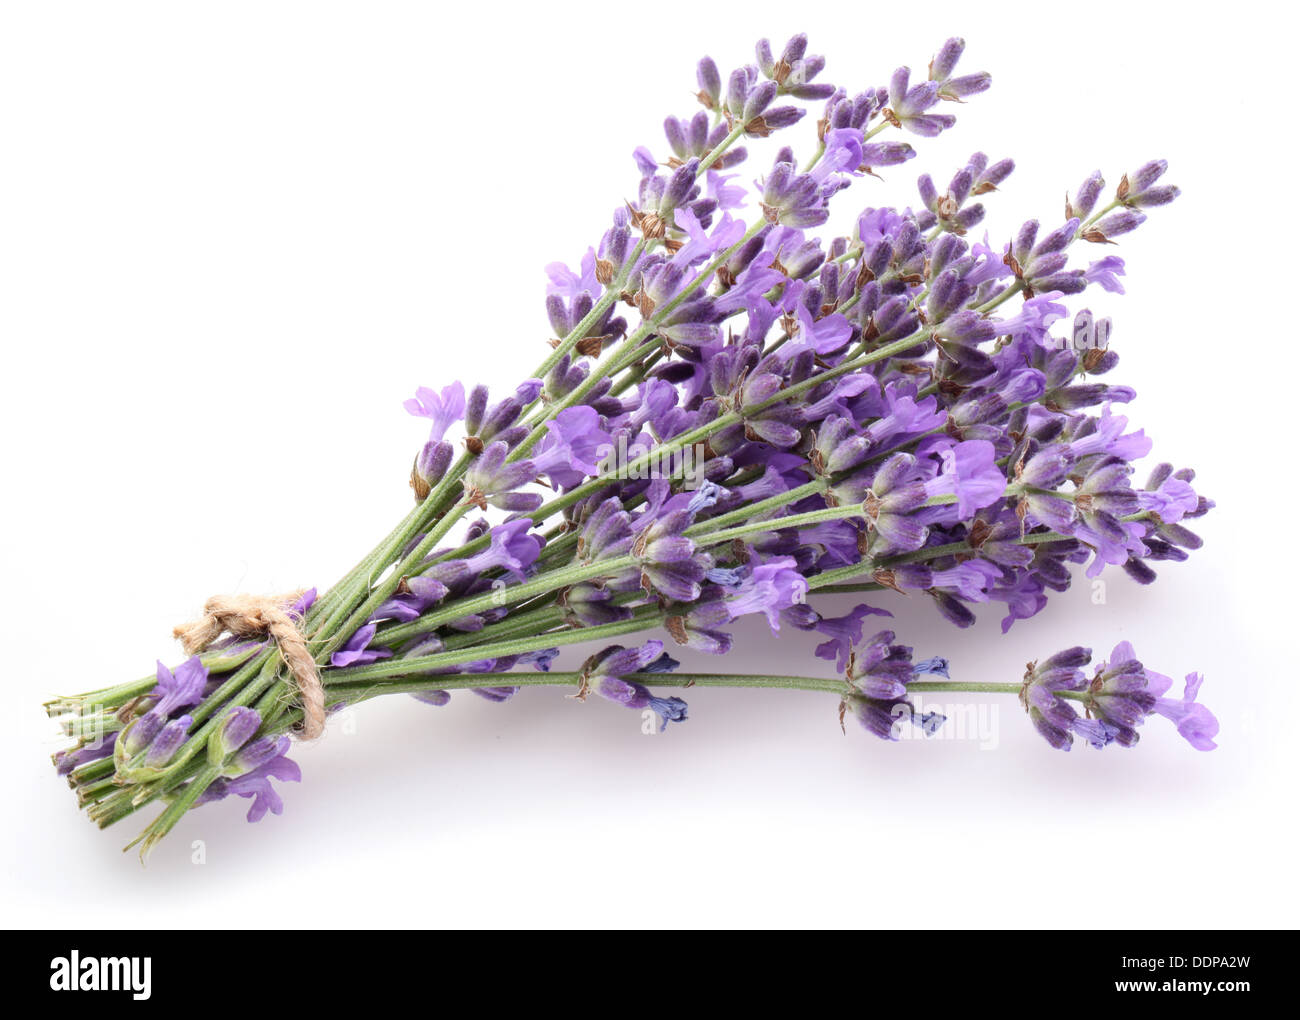 Bunch of lavender on a white background. - Stock Image